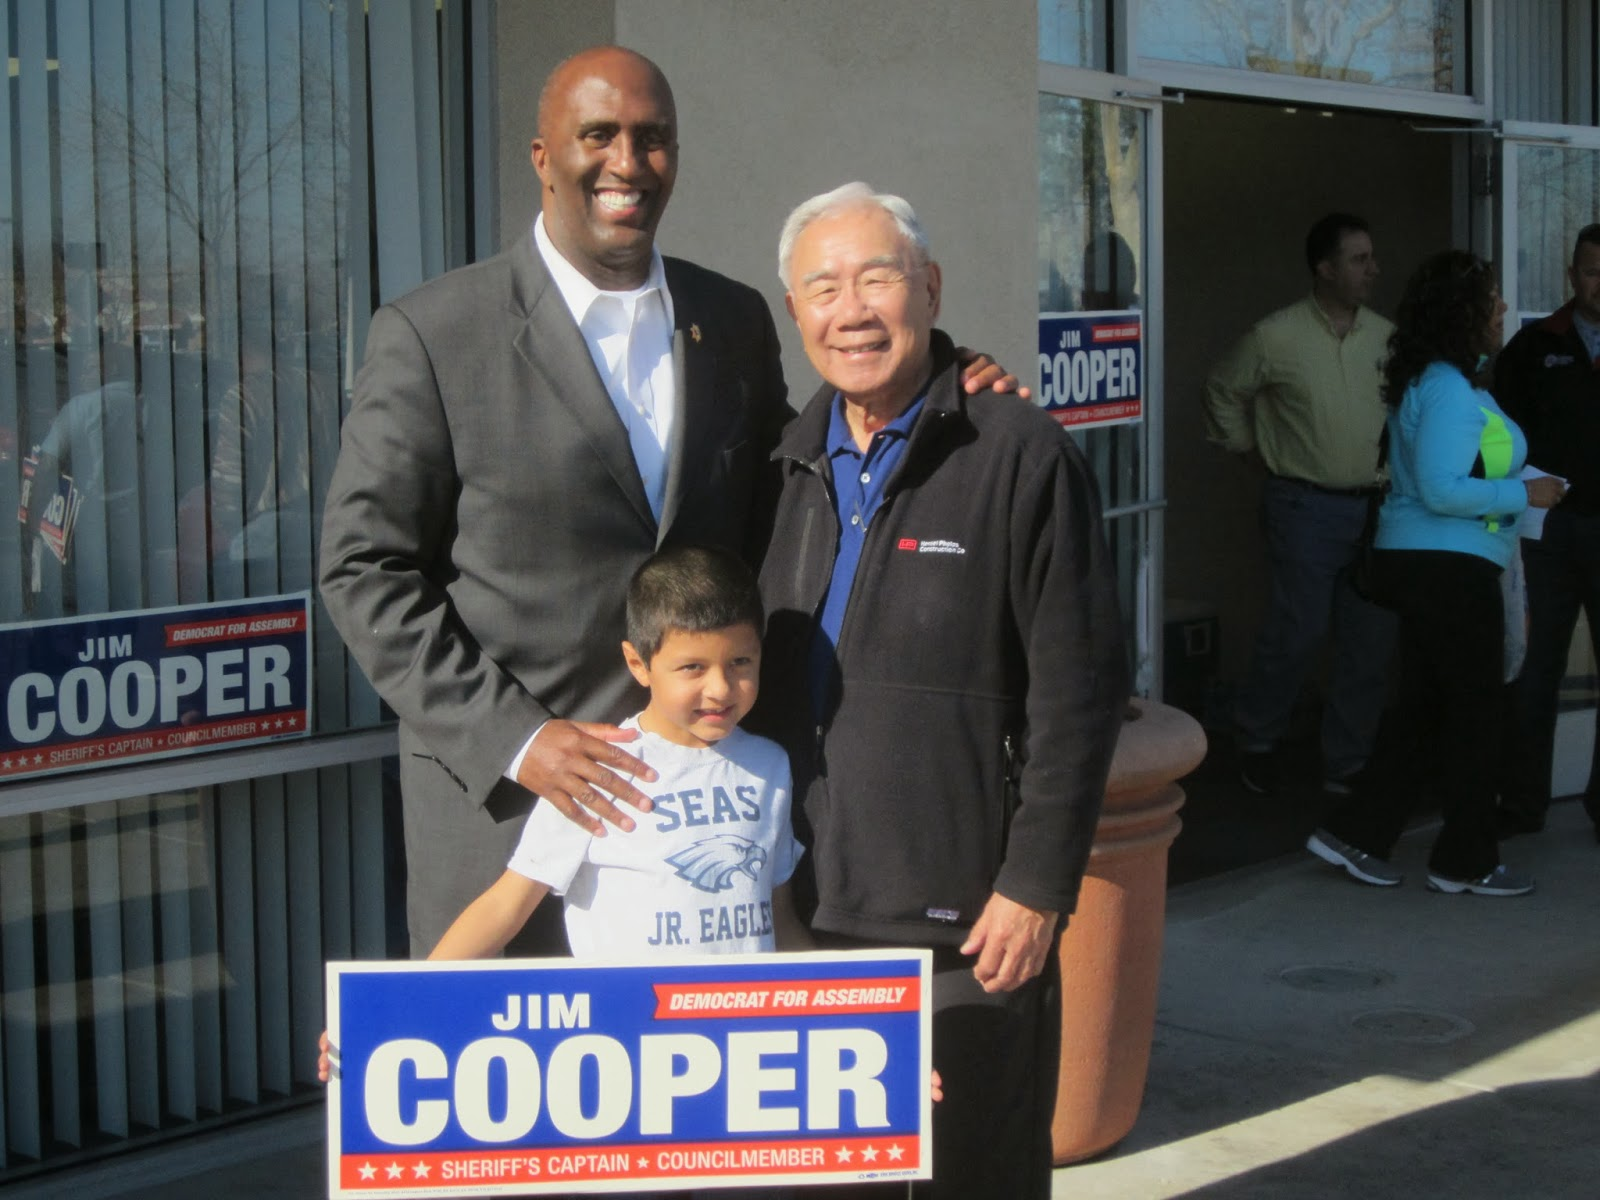 Cooper Kicks-Off Ninth Assembly Campaign